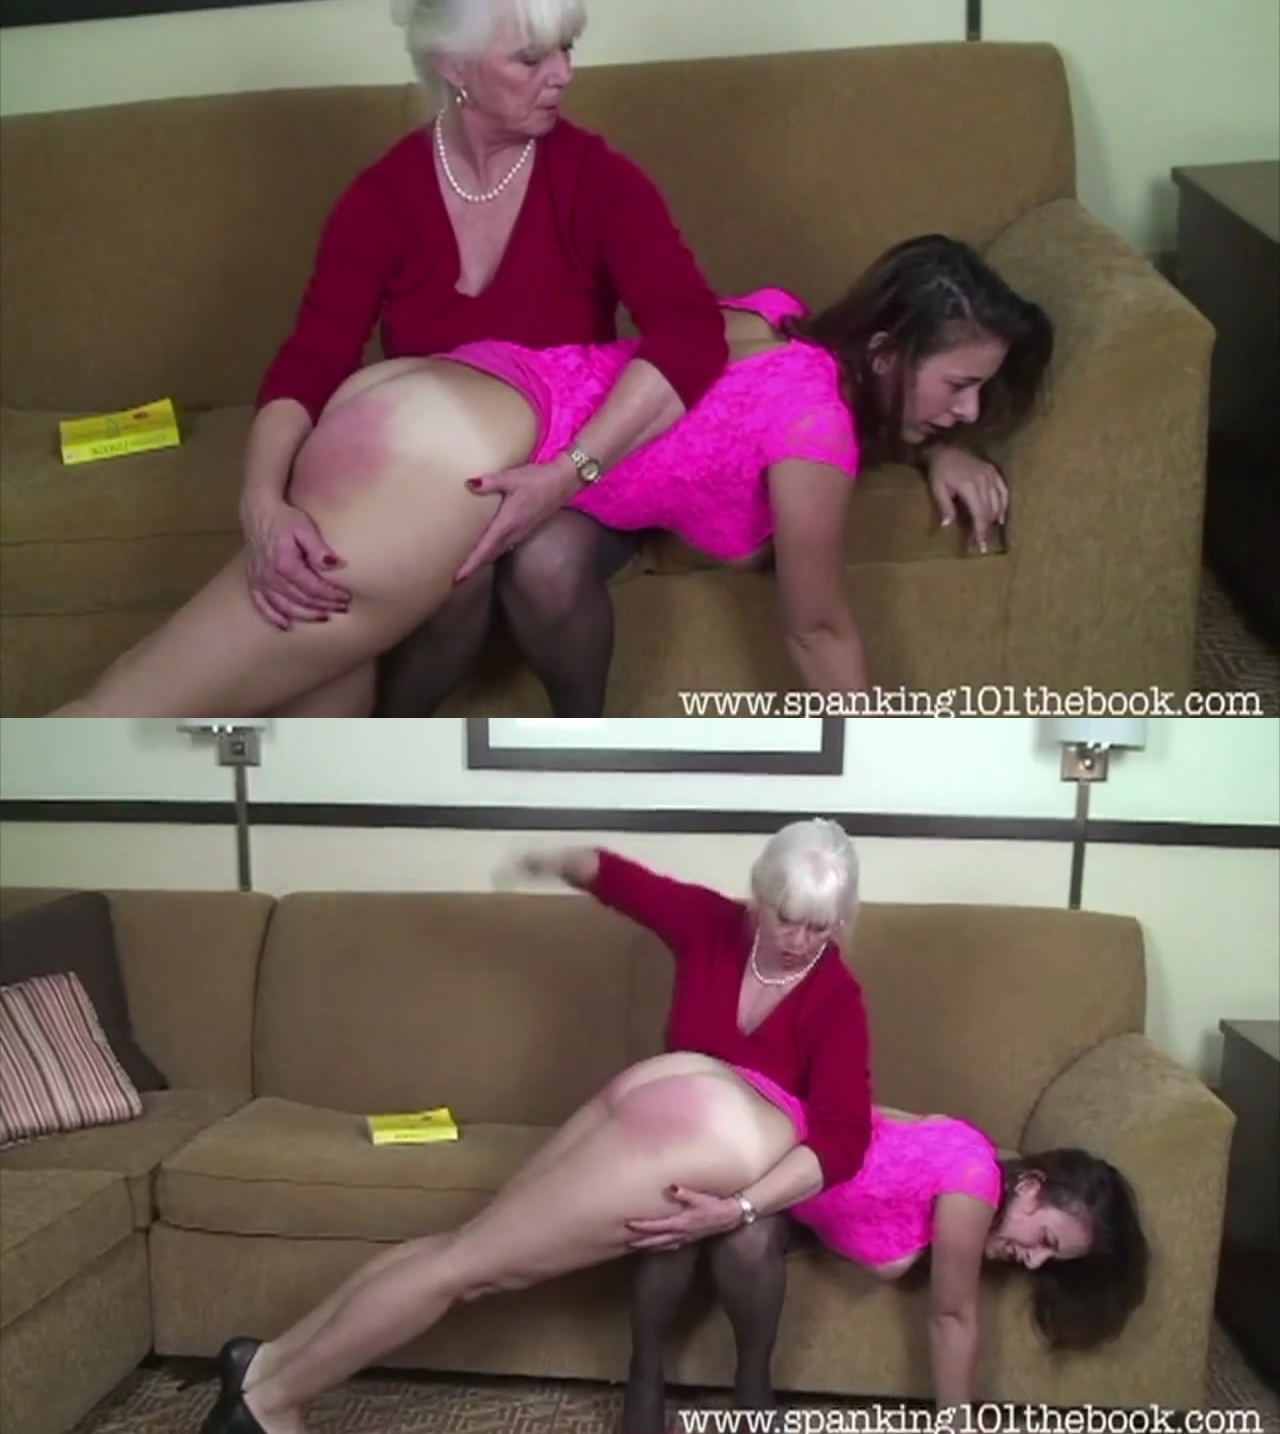 Spanking 101 The Videos – MP4/HD – Punished in Pink 2